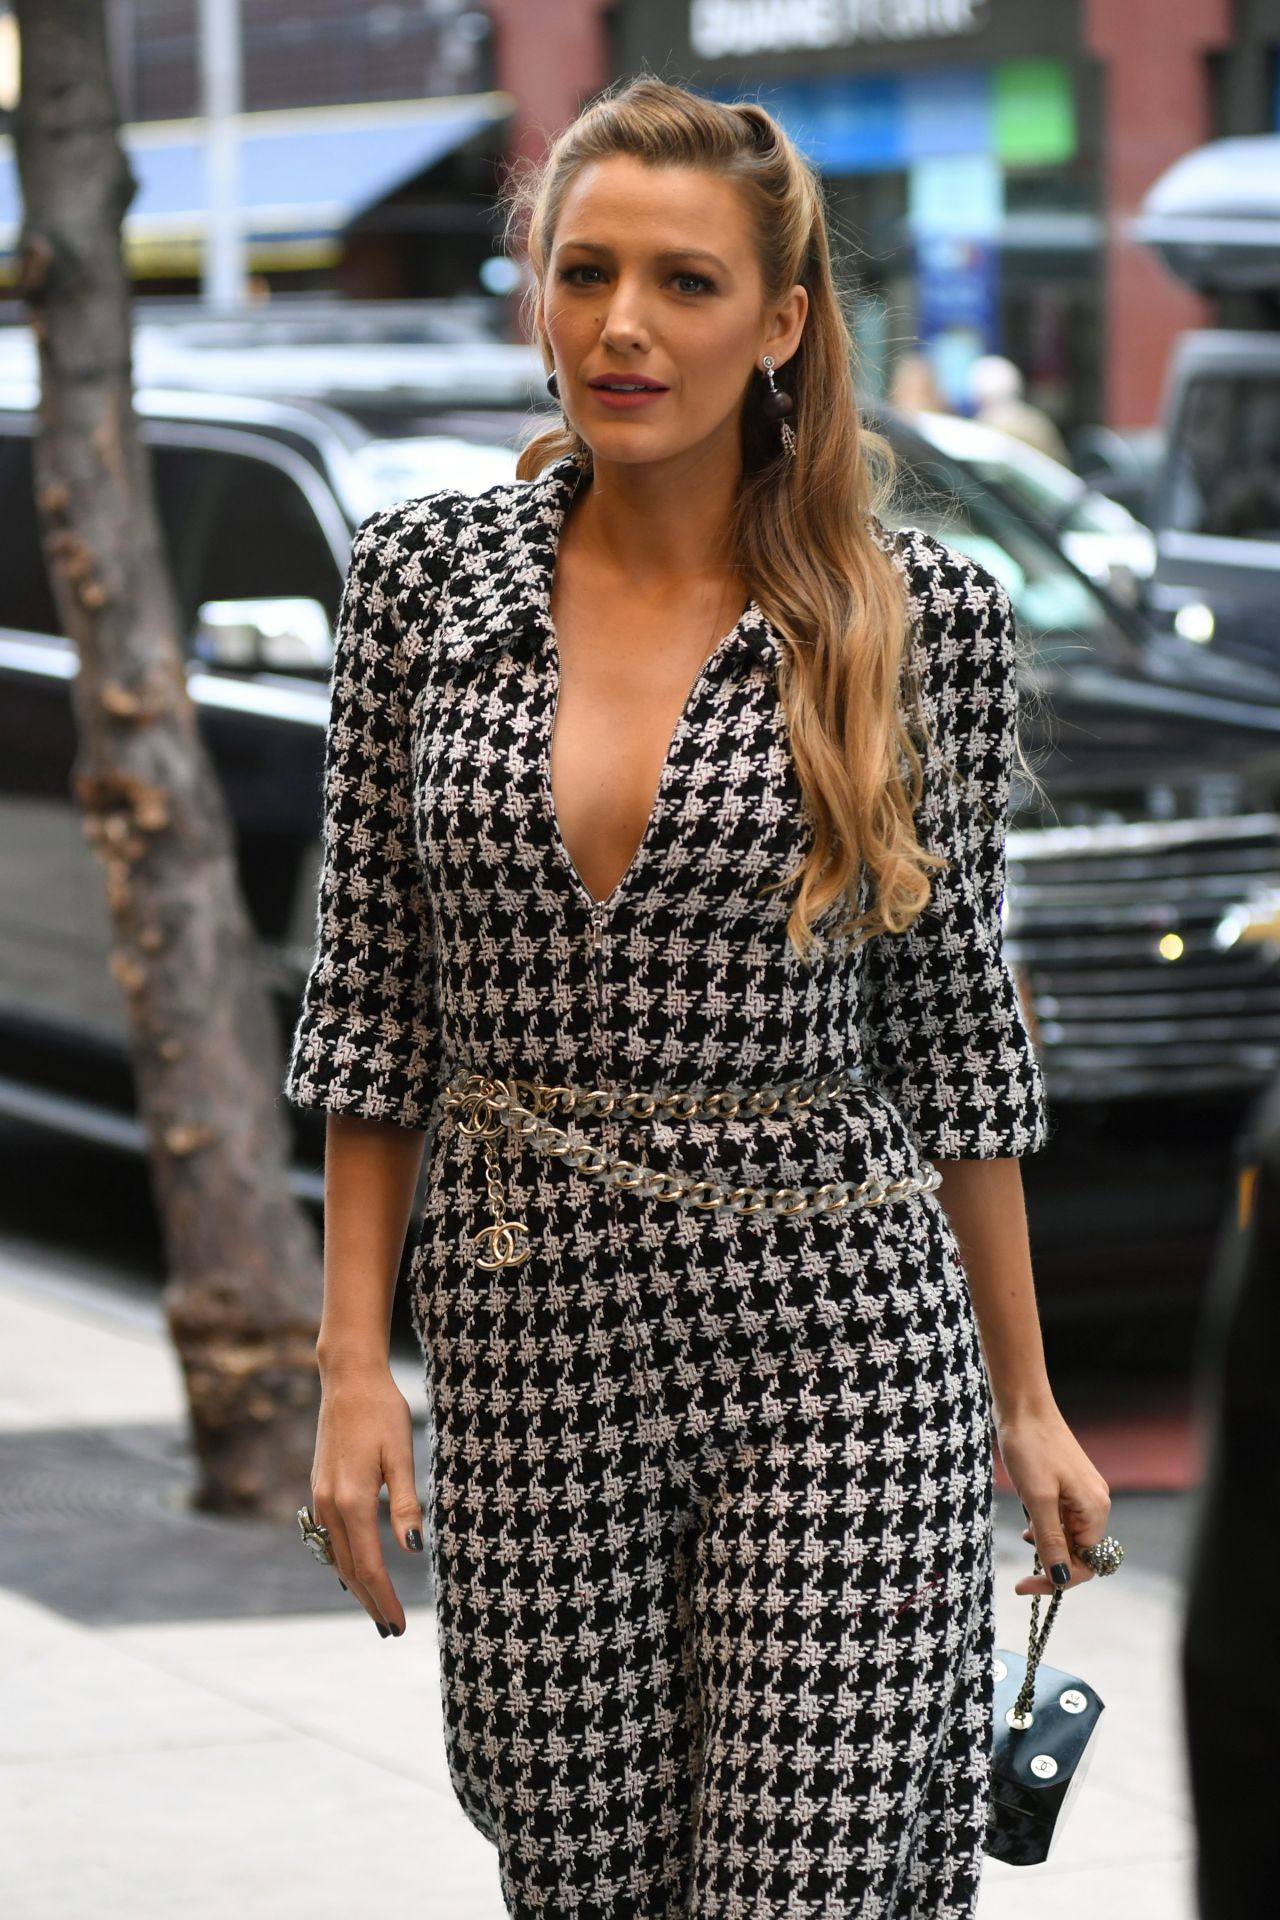 blake-lively-style-and-fashion-inspirations-arriving-at-her-hotel-in-nyc-10-16-2017-9.jpg